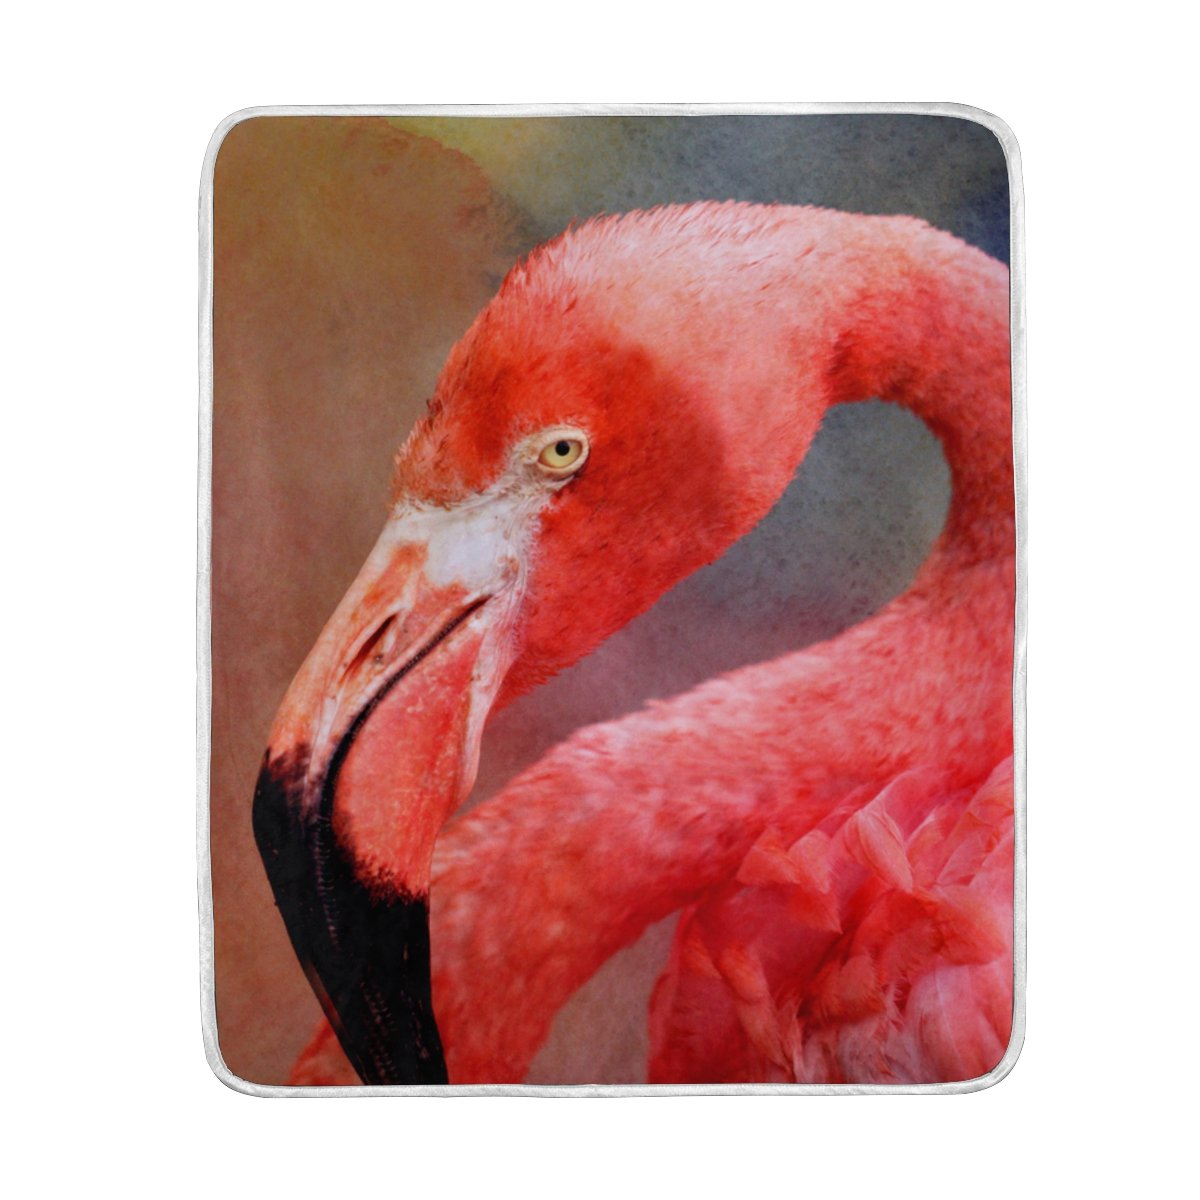 My Little Nest Warm Throw Blanket Beautiful Red Flamingo Lightweight Microfiber Soft Blanket Everyday Use for Bed Couch Sofa 50'' x 60''